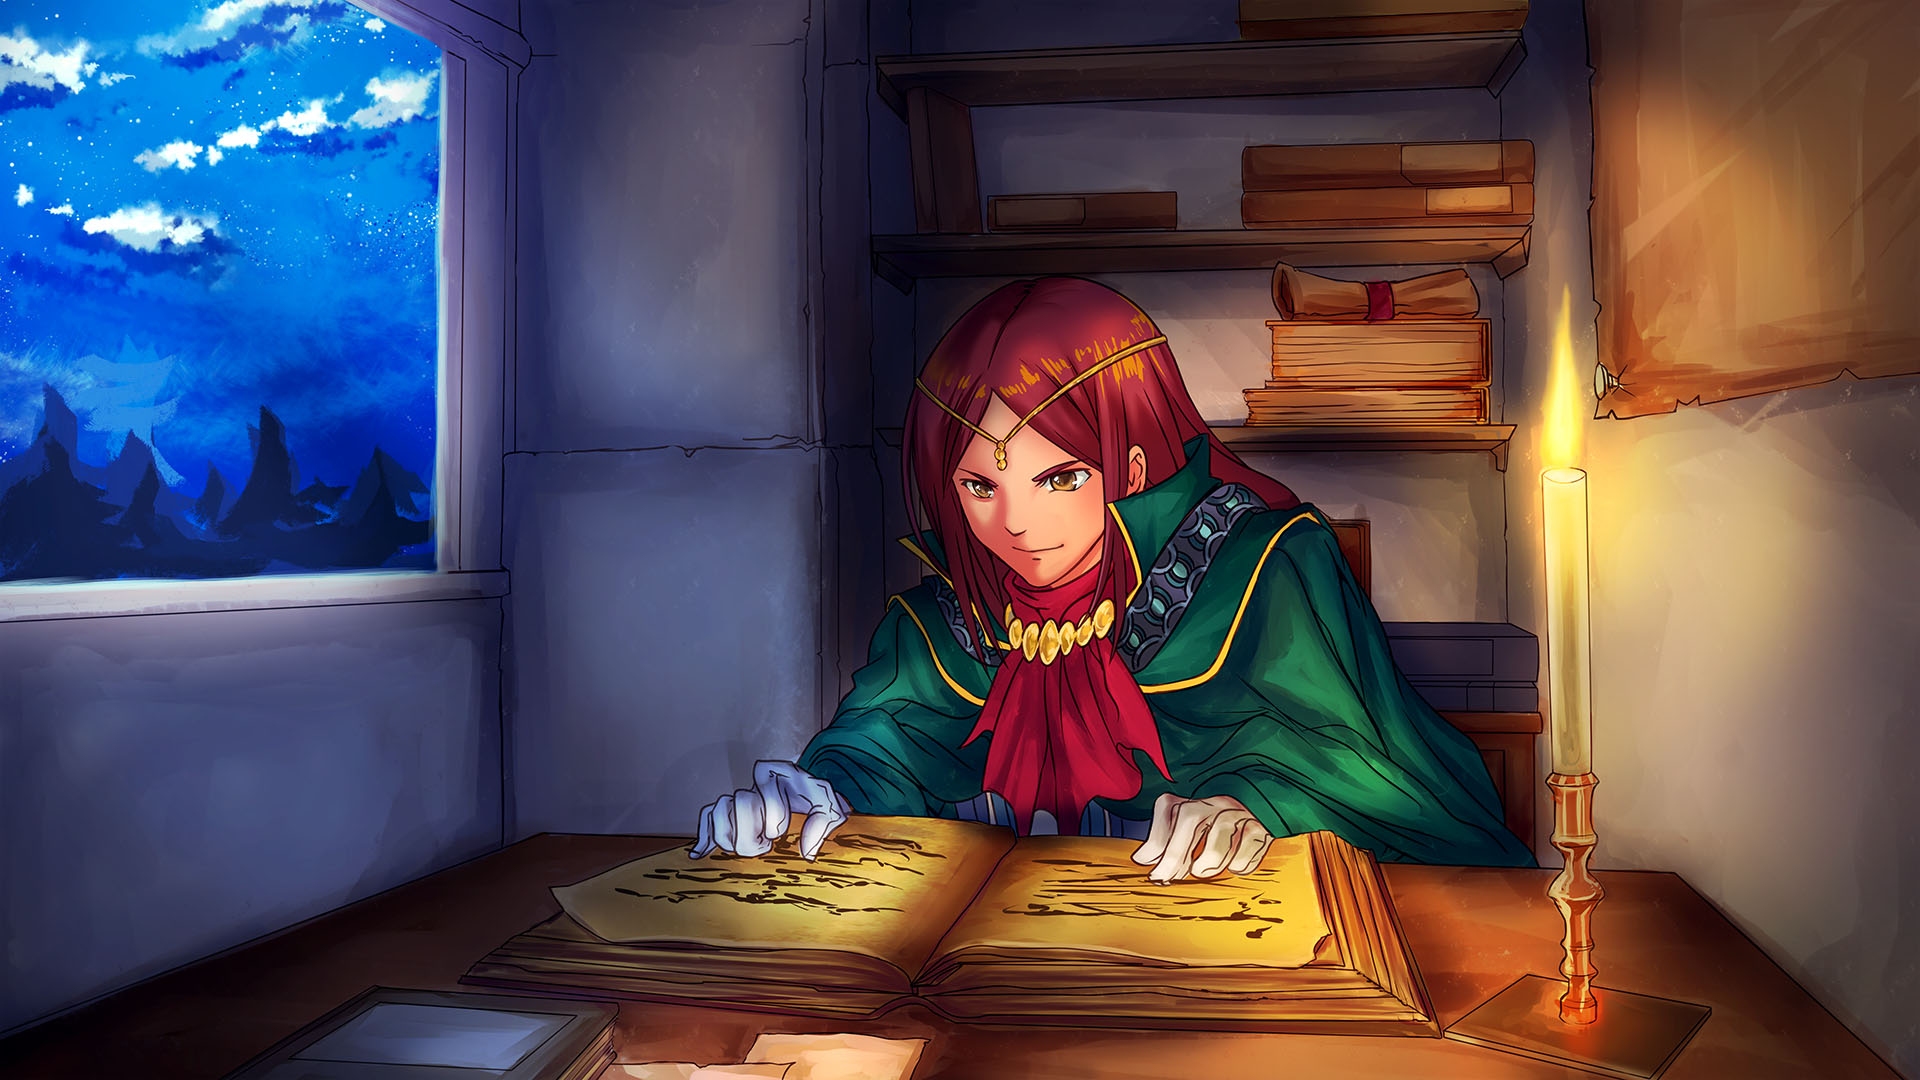 Steam card exchange showcase rpg maker vx ace publicscrutiny Image collections